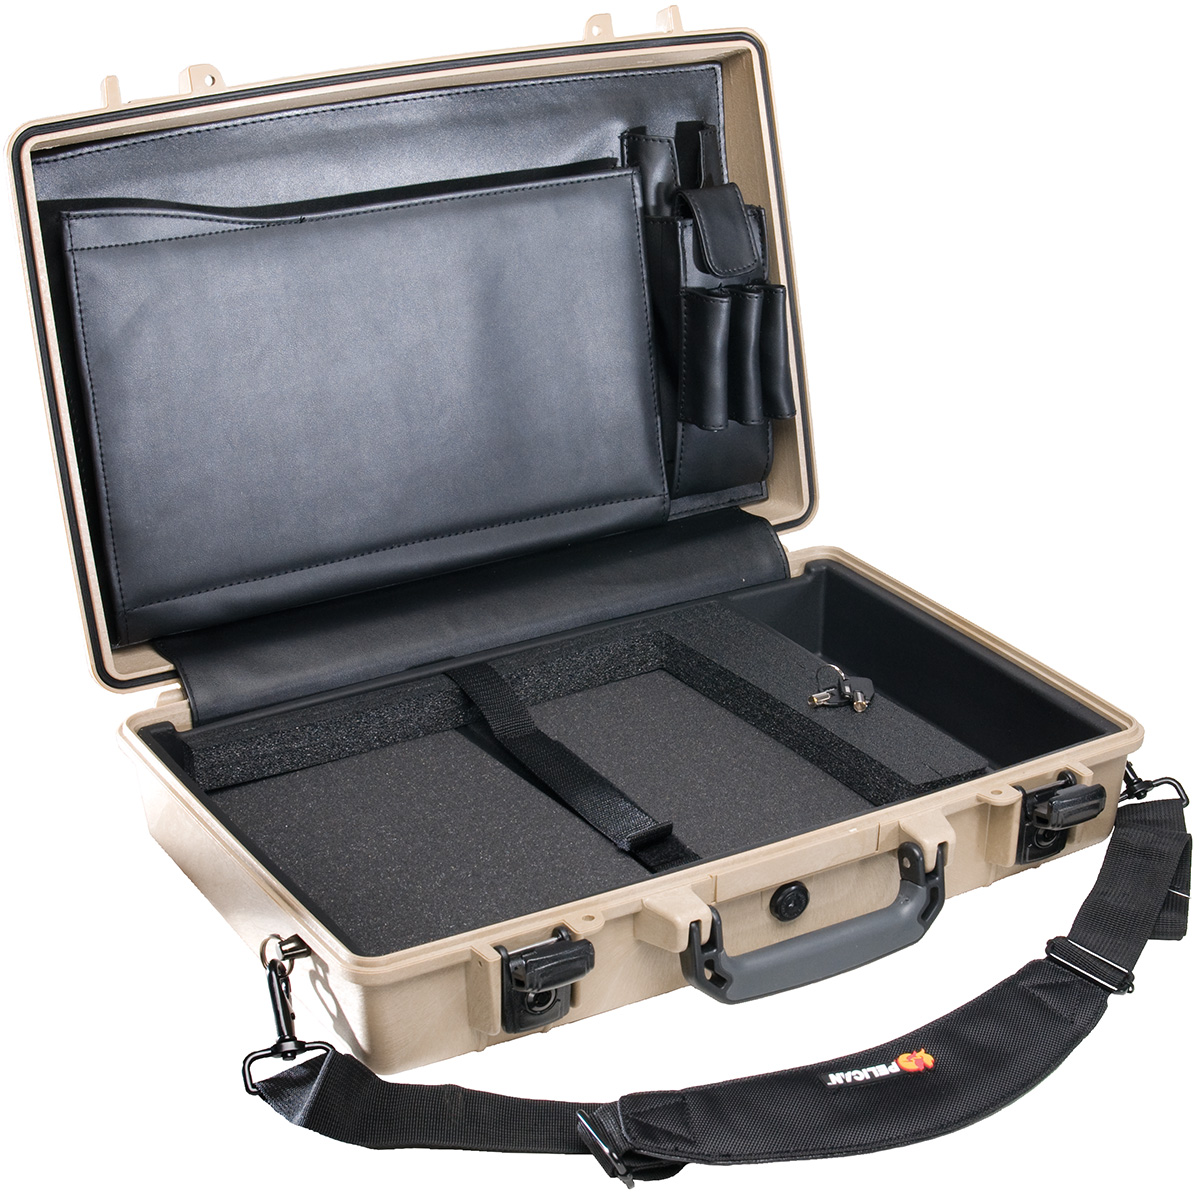 pelican peli products 1490CC1 usa made hard laptop case briefcase